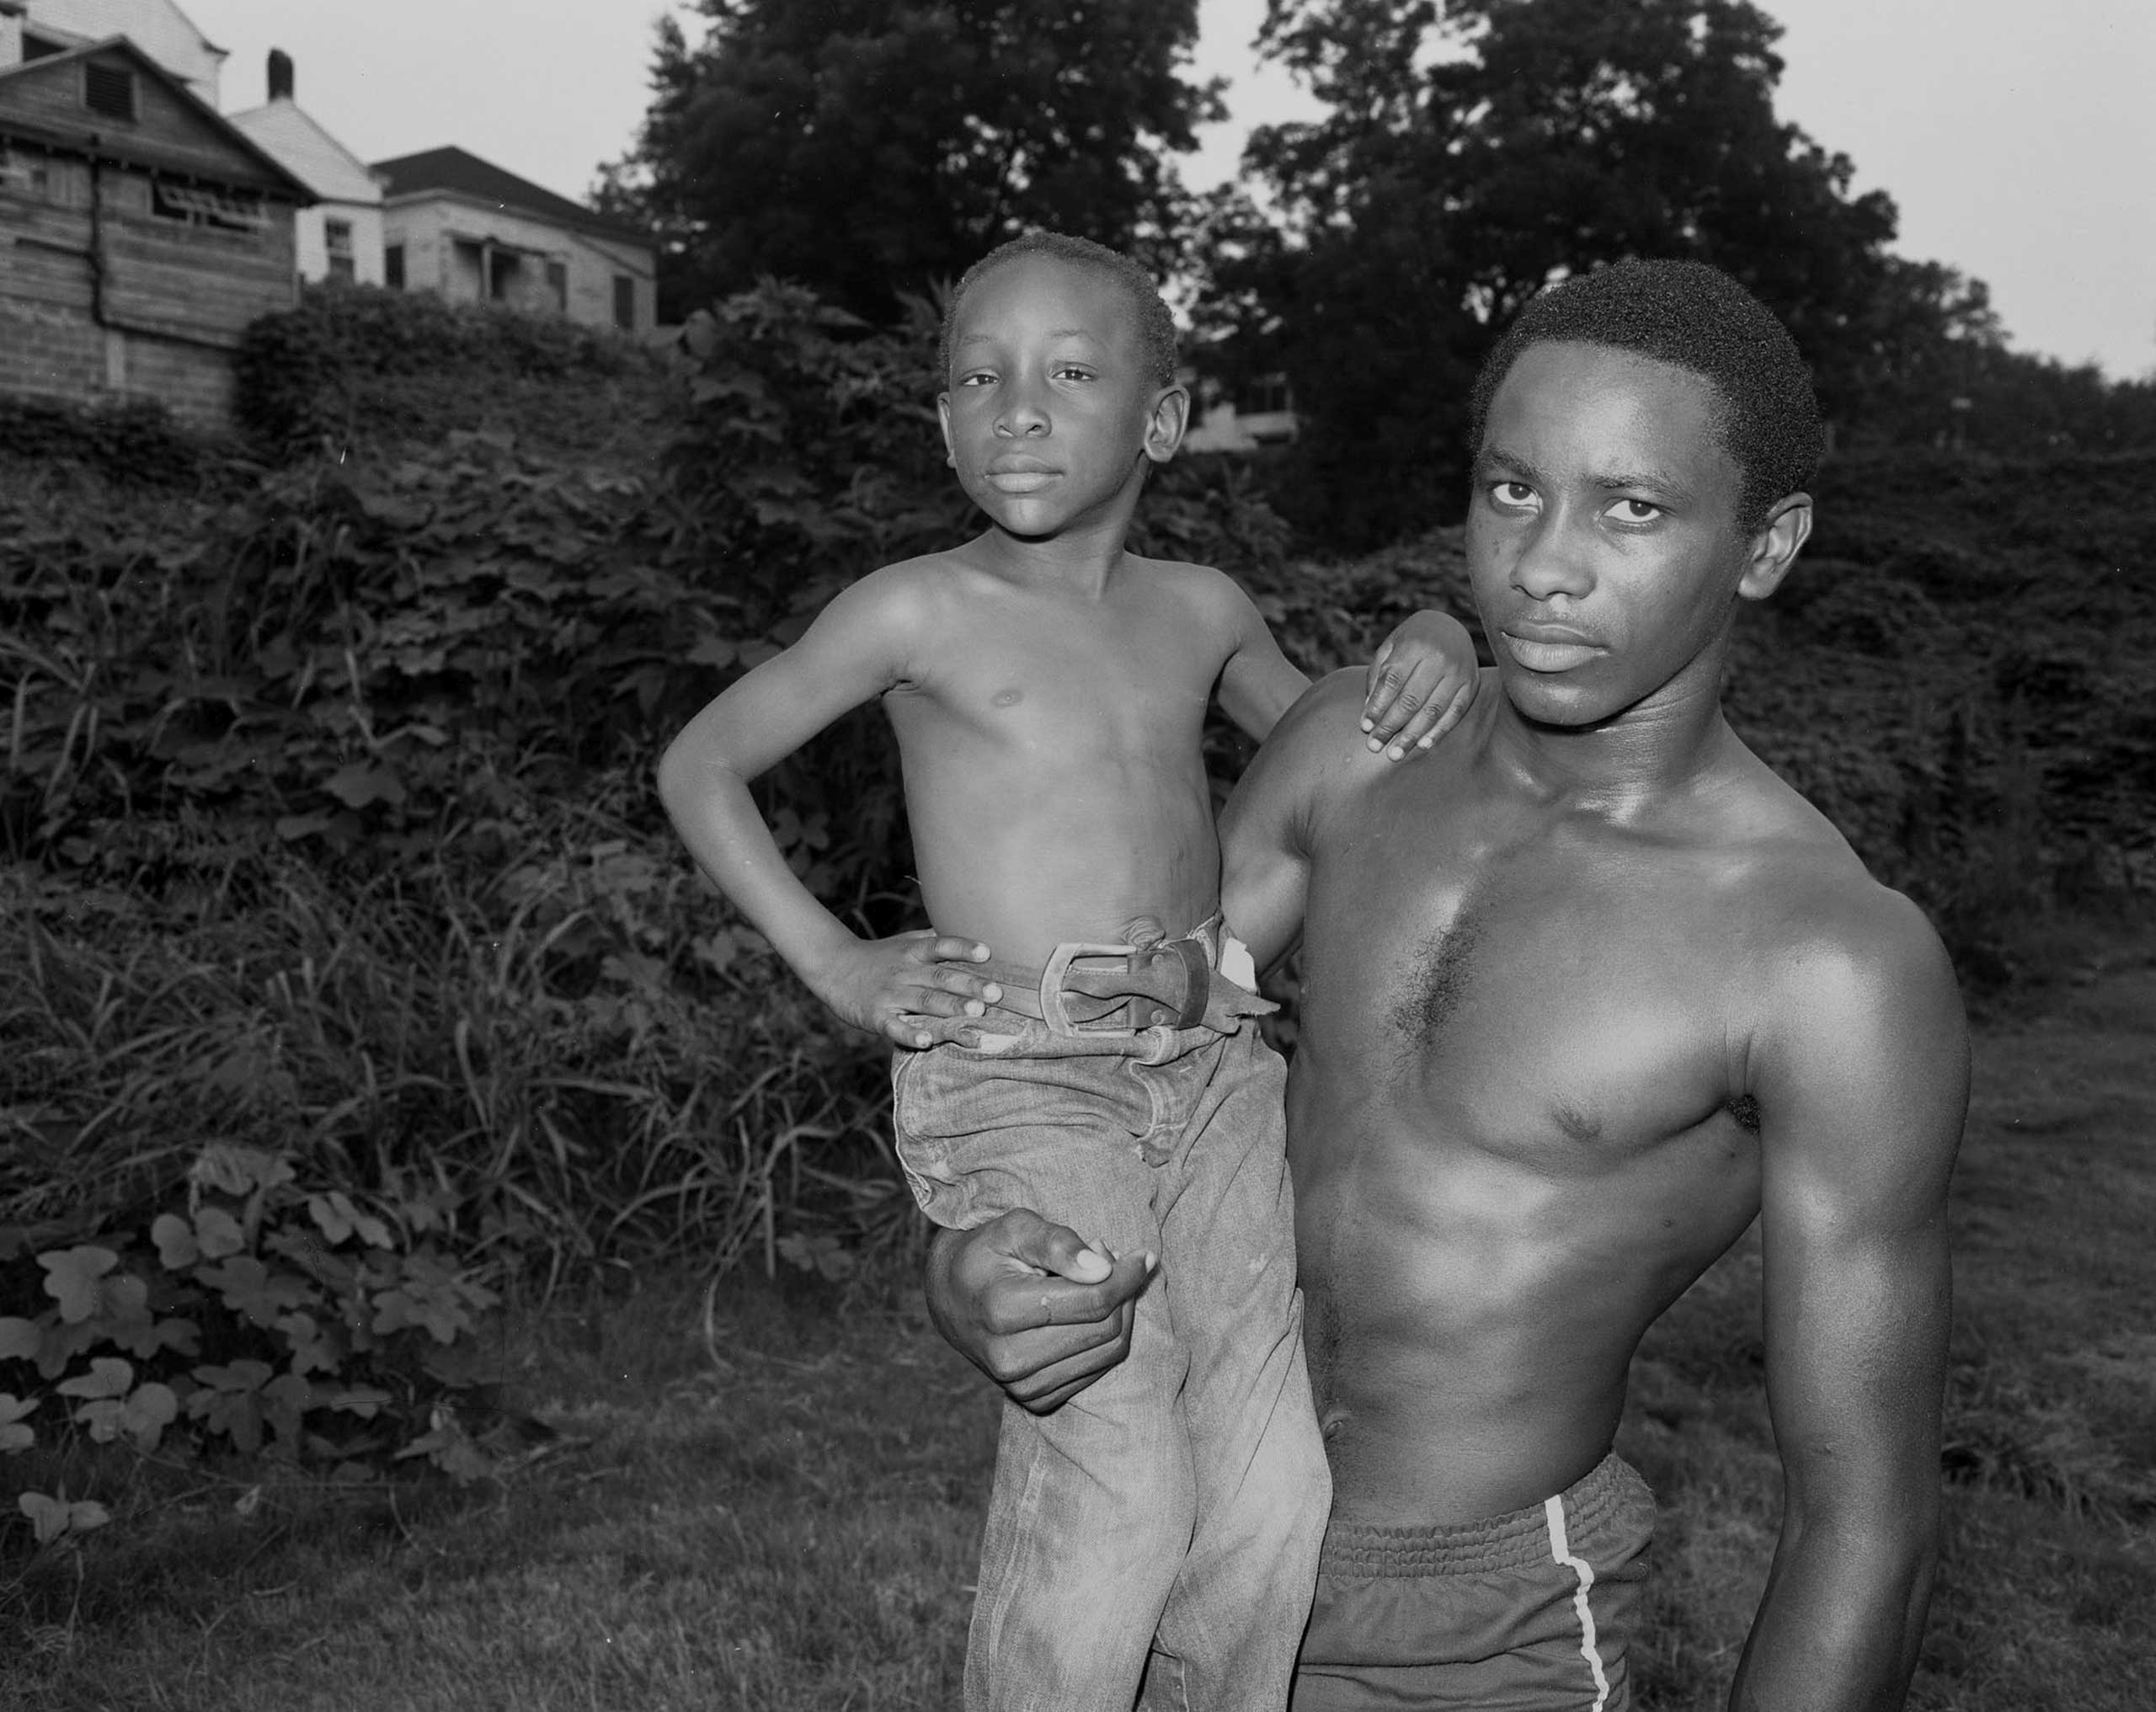 Land Inhabited and Works of Baldwin Lee, The Museum of Contemporary Art of Georgia, Ga.: Sept. 23 - Nov. 19                                                              (Caption: Alan and Friend, Vicksburg, MS, 1983)